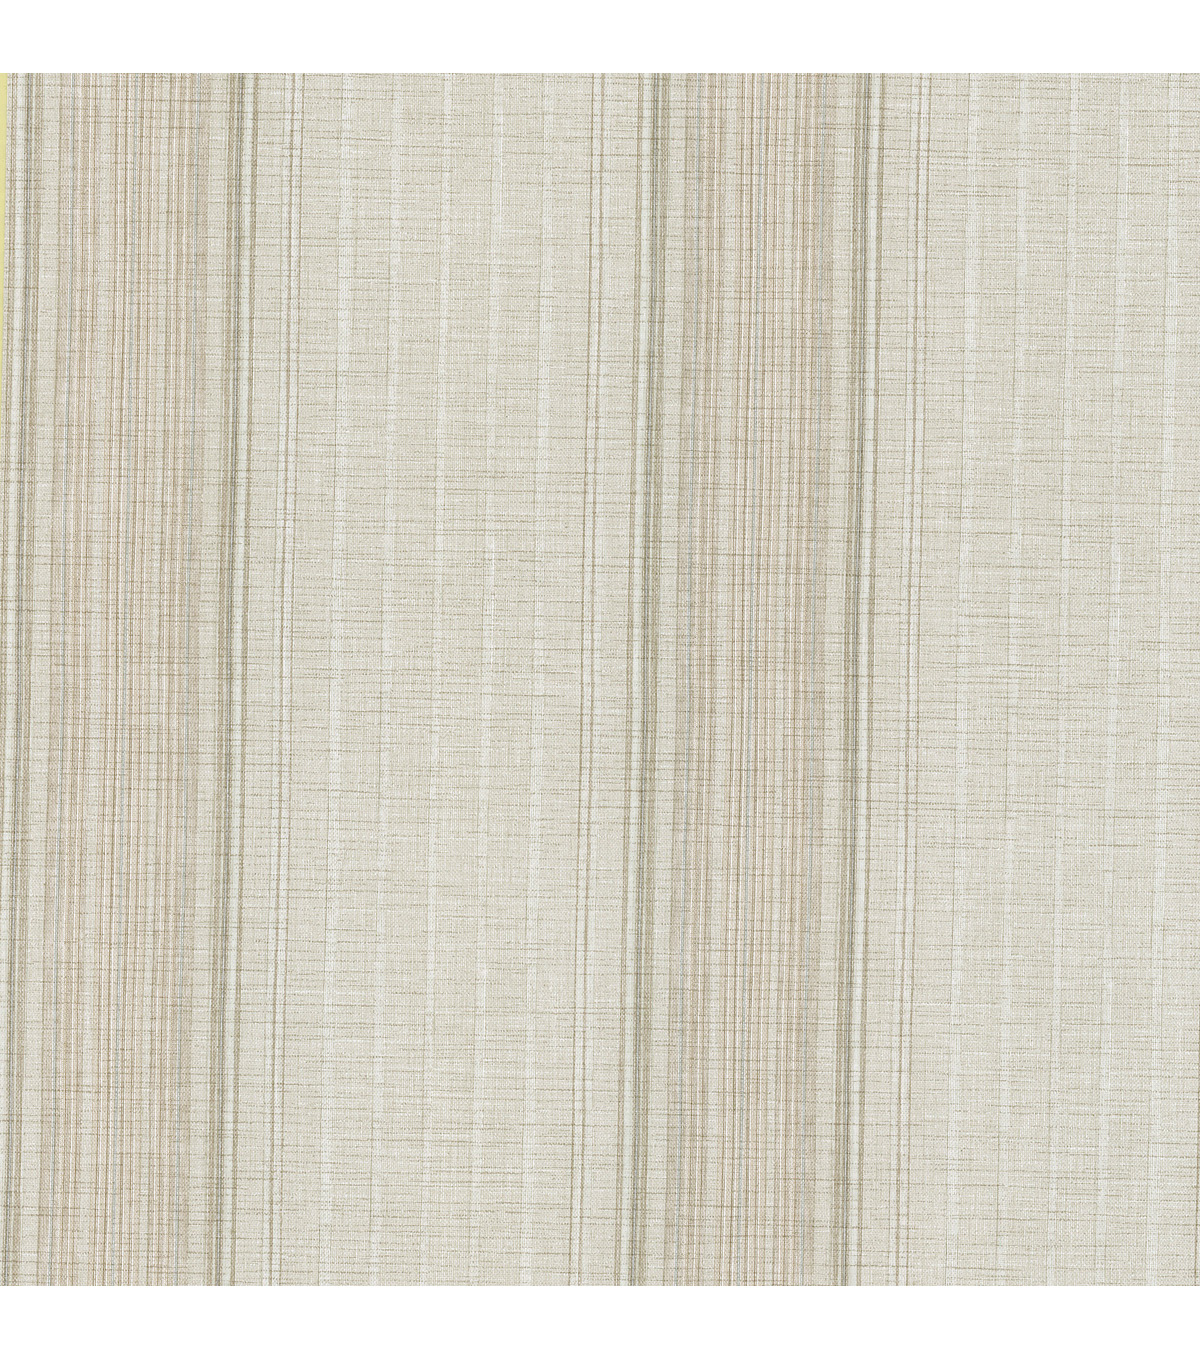 Natuche Mauve Linen Stripe Wallpaper Sample